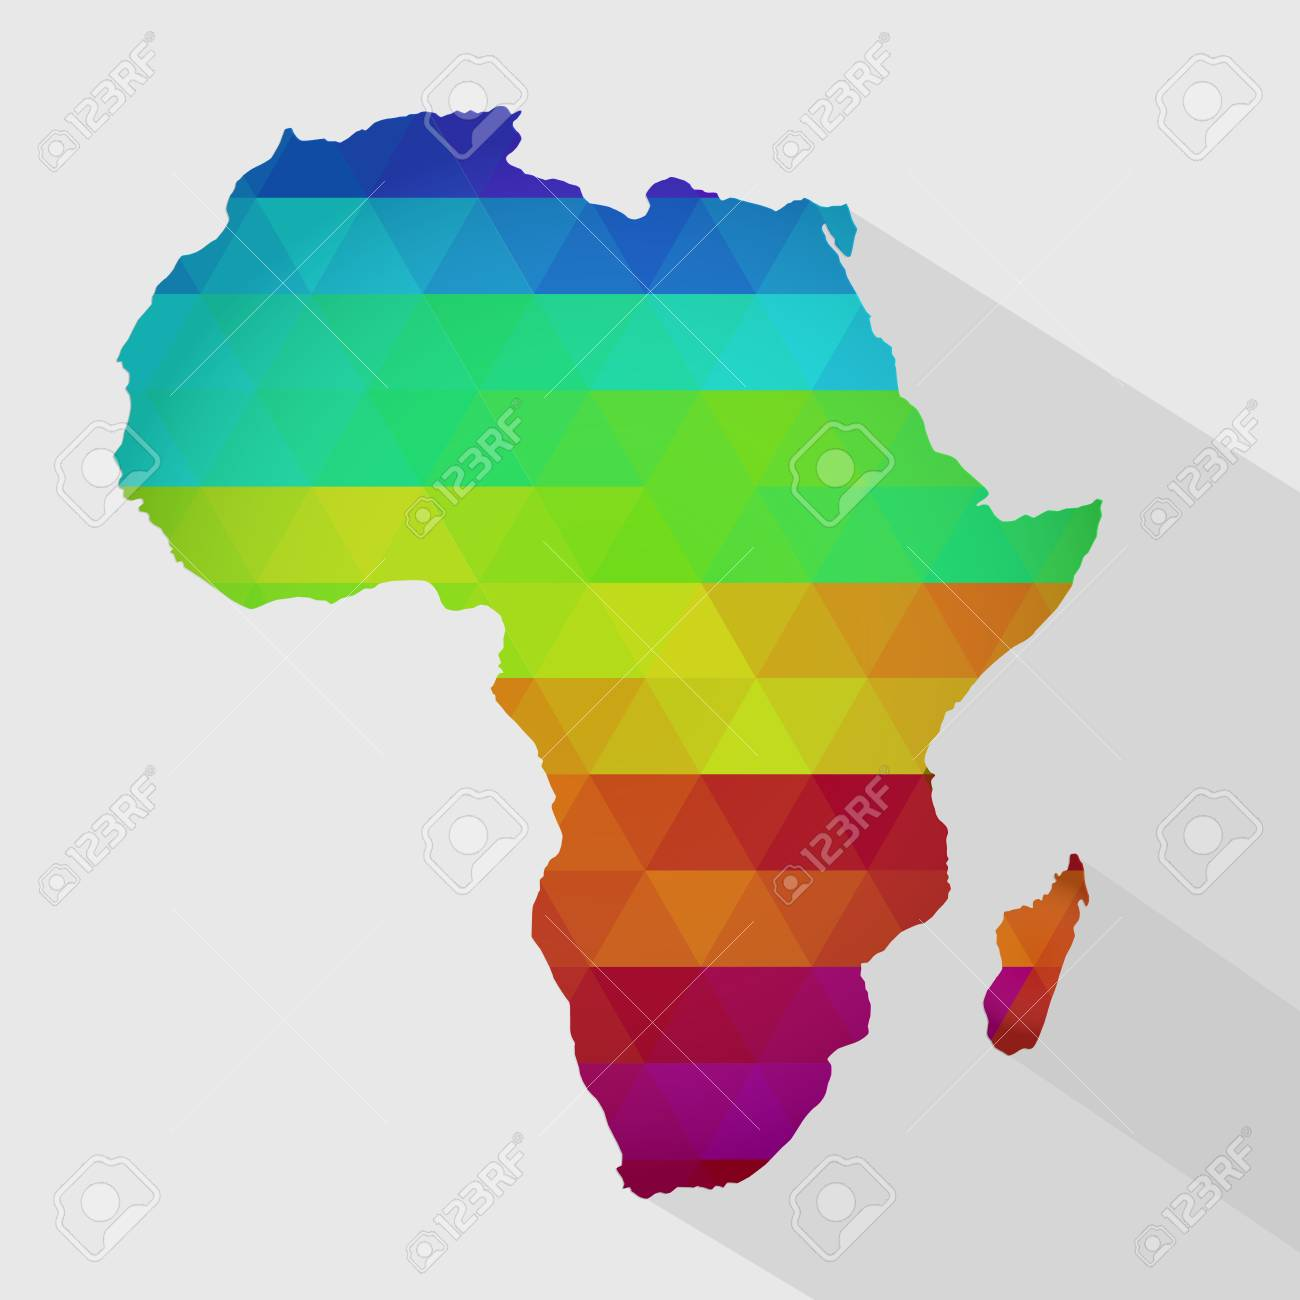 Shape Of Africa Map.Map Of Africa With Colored Geometric Shapes Triangles Forming